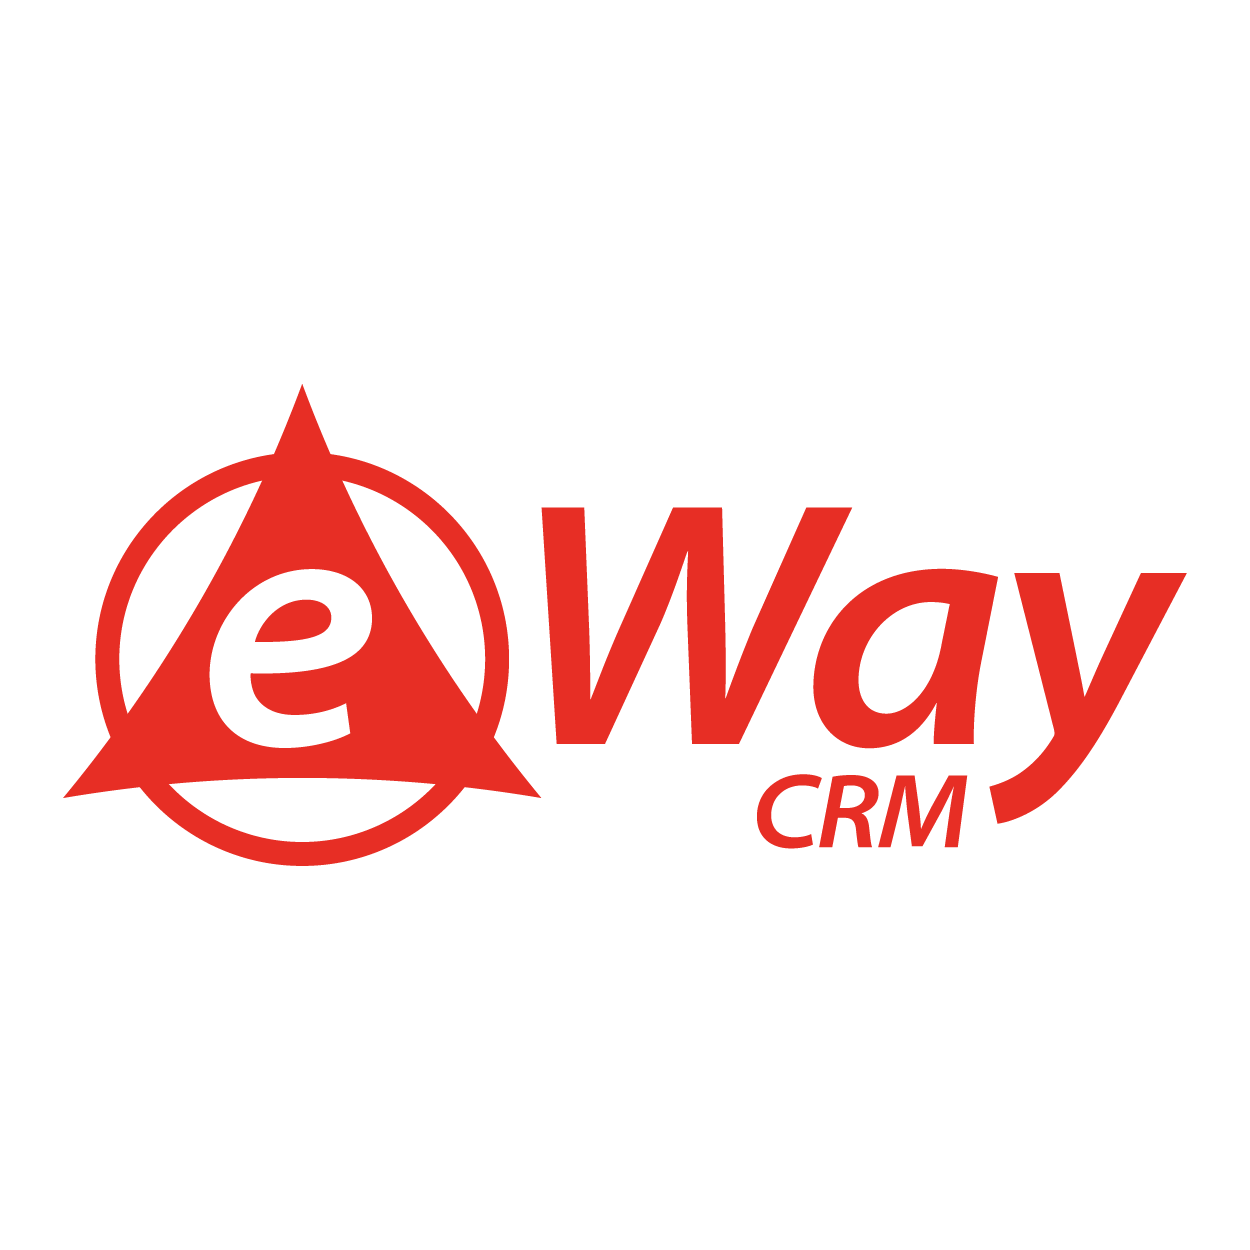 eWay-CRM | The Best CRM Software for Outlook | Be effective